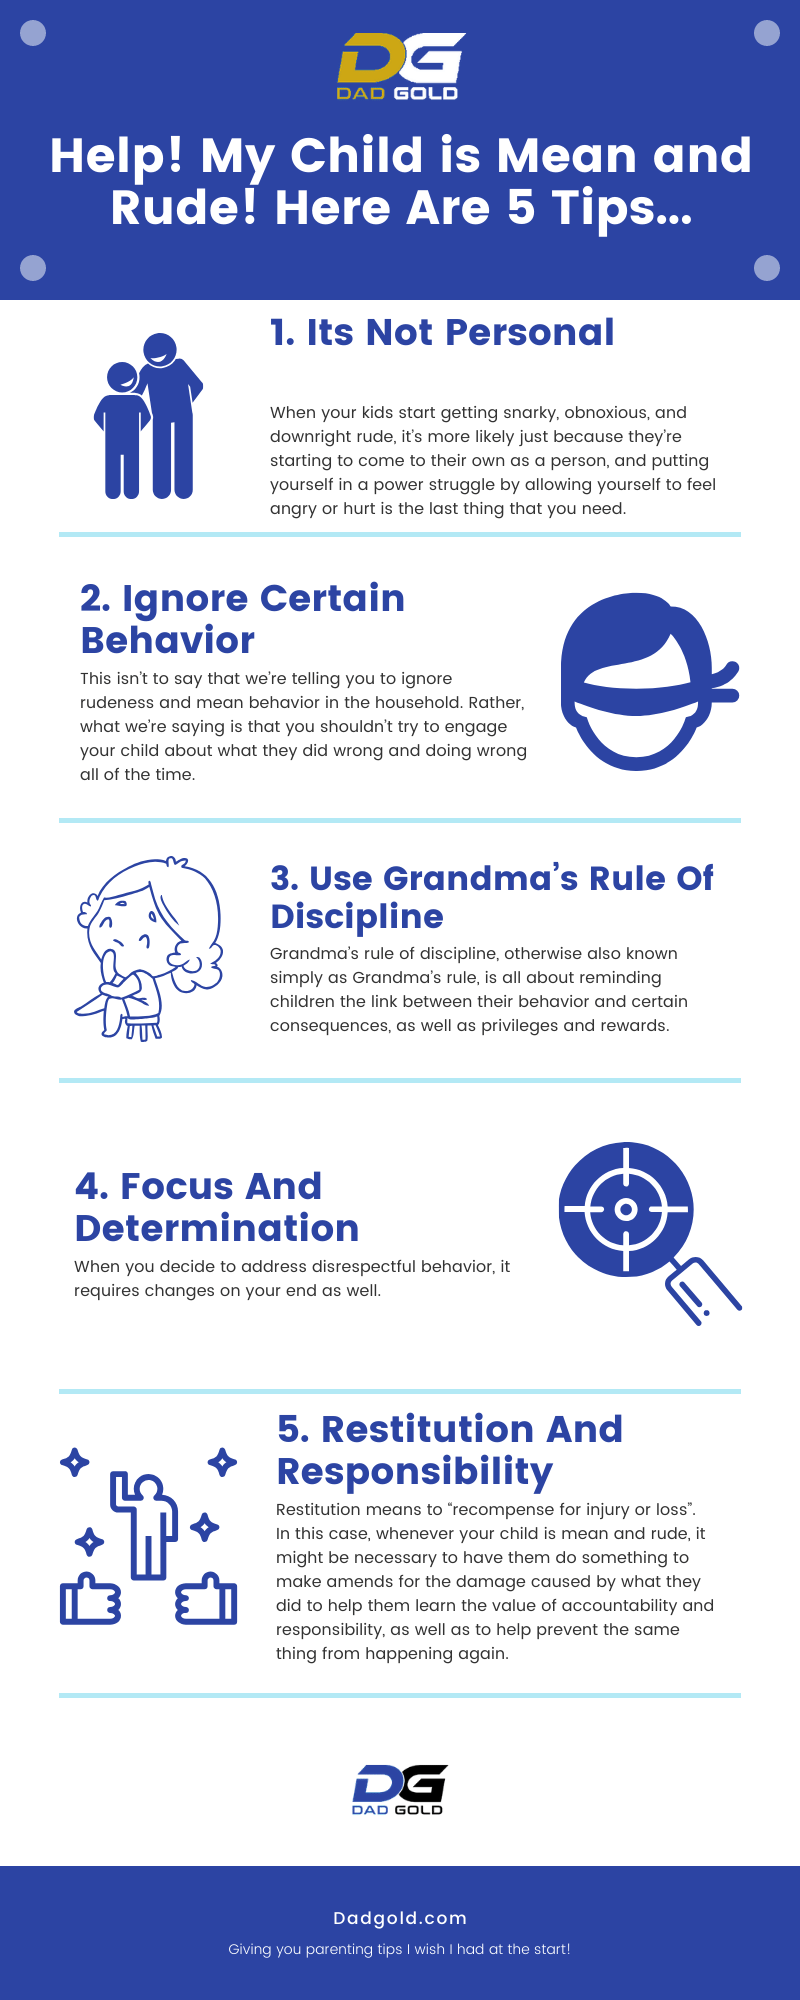 Help My Child is Mean and Rude Here Are 5 Tips Infographic